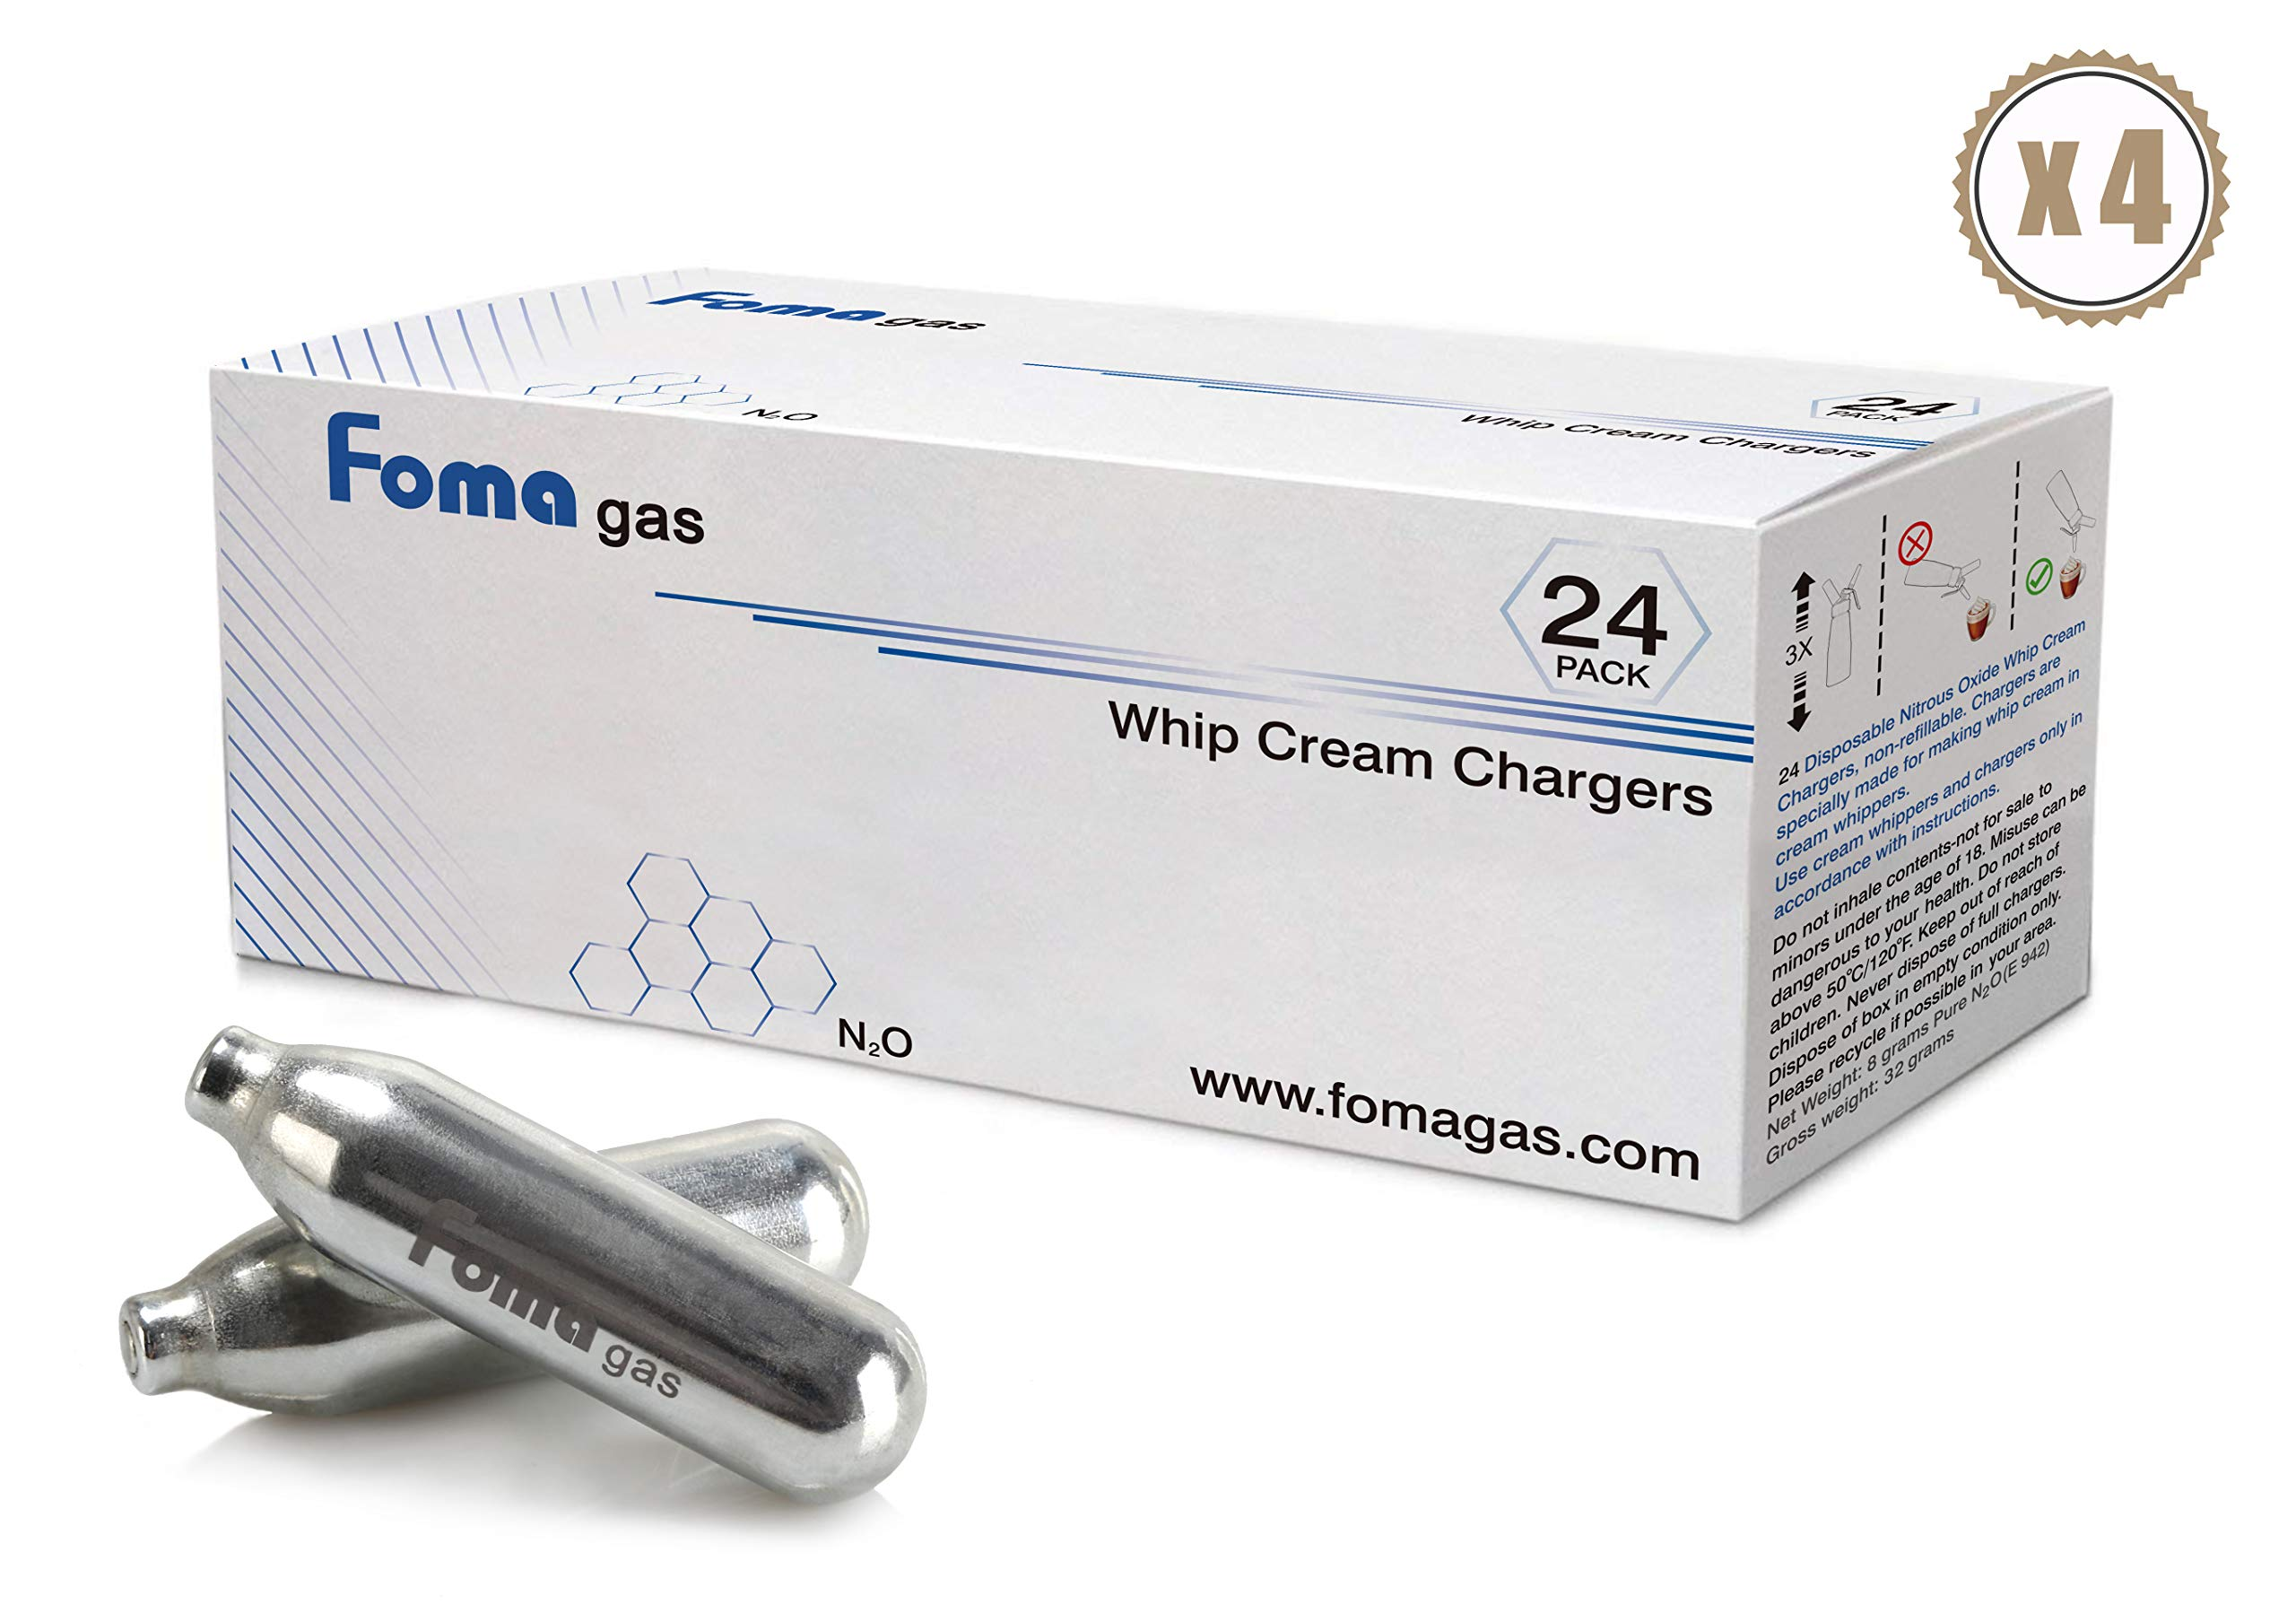 Foma Gas Pure Food Grade whipped cream chargers N2O Whip Cream Chargers (96 packs)